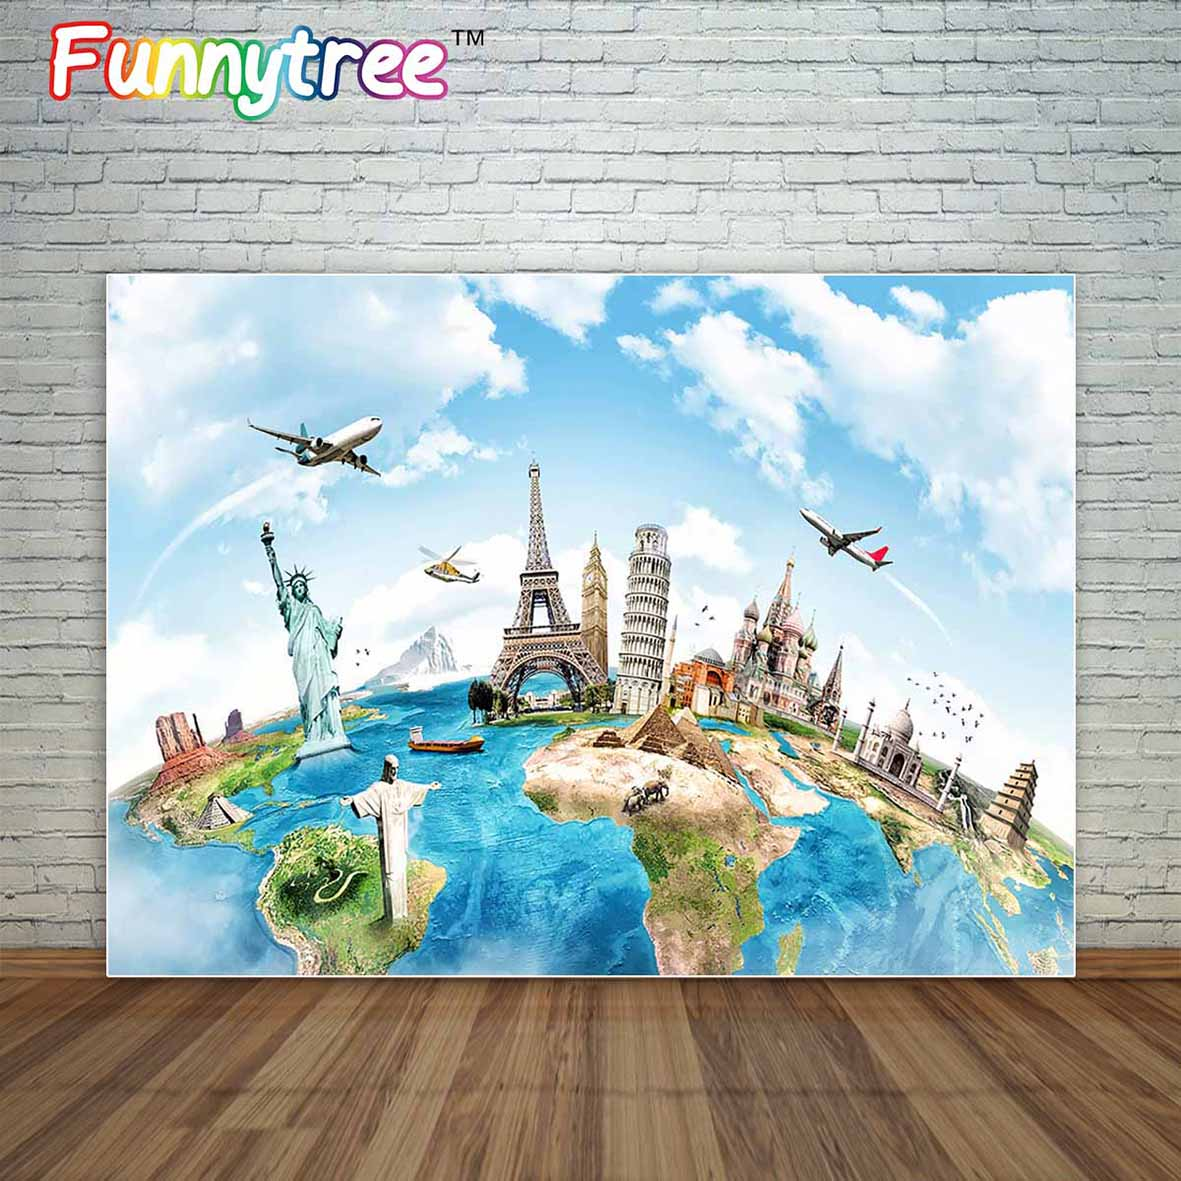 backdrop travel the world Famous architecture love wedding background Valentine's Day photography a photo studio backdrop vinyl 150x90cm pink valentine s day vinyl studio backdrop love theme photography background cloth photo props wedding party favor